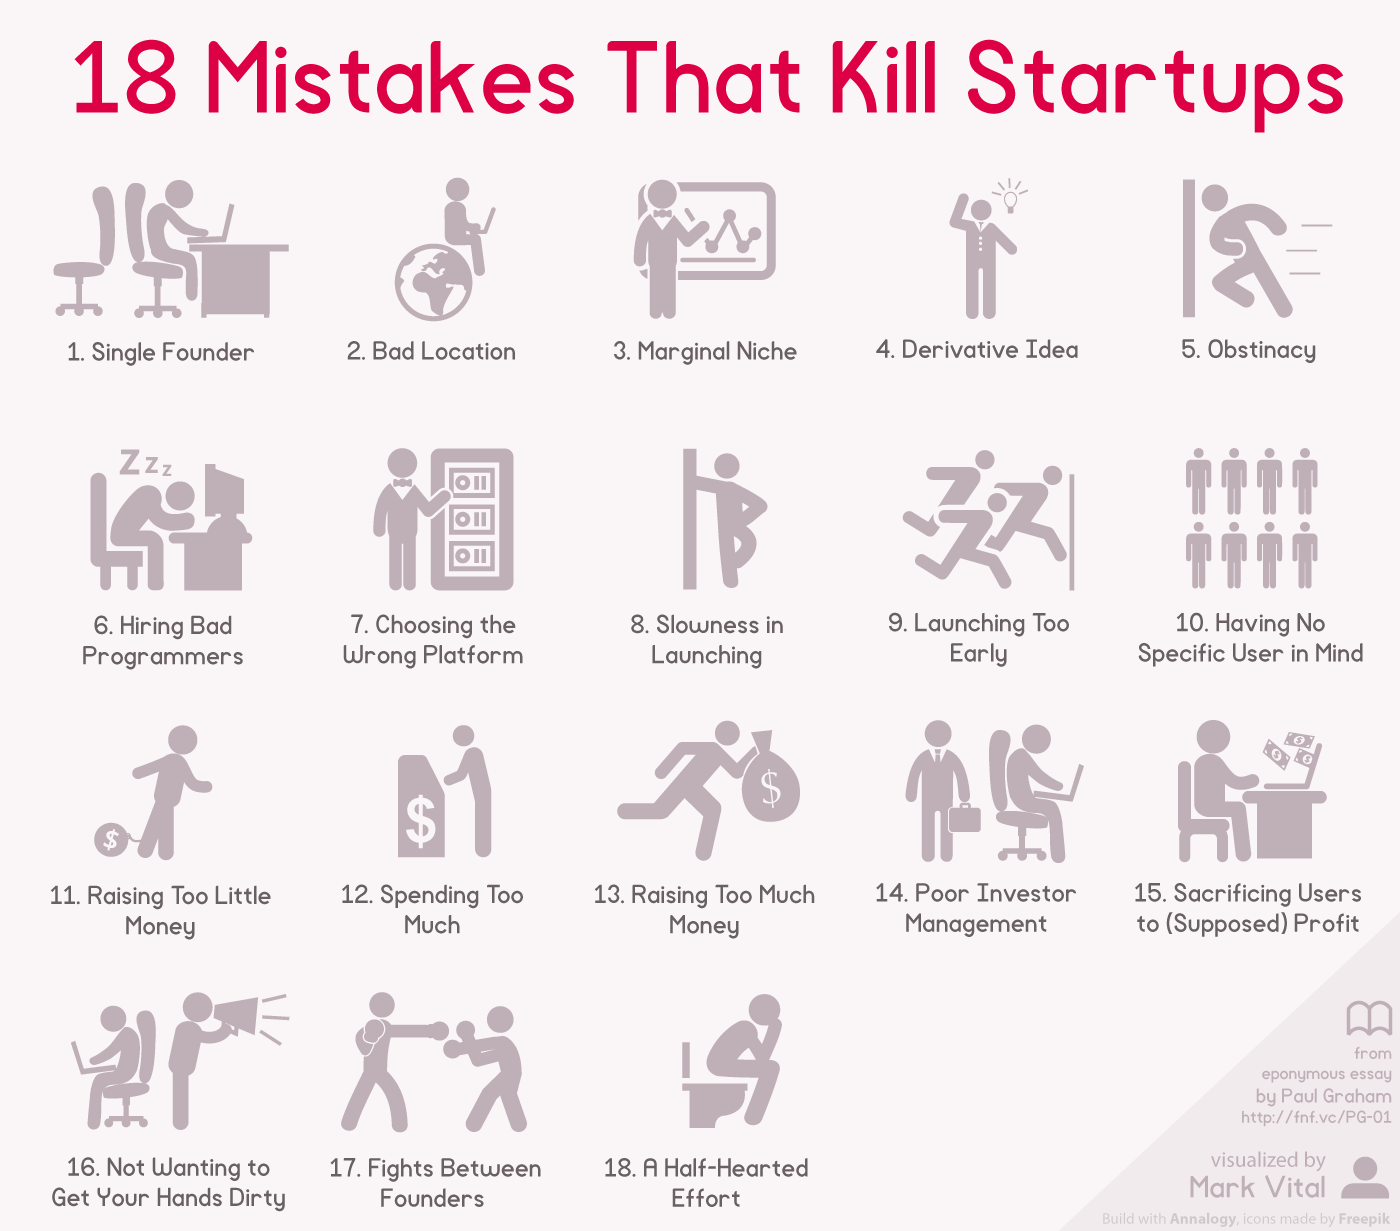 18 mistakes kill startups